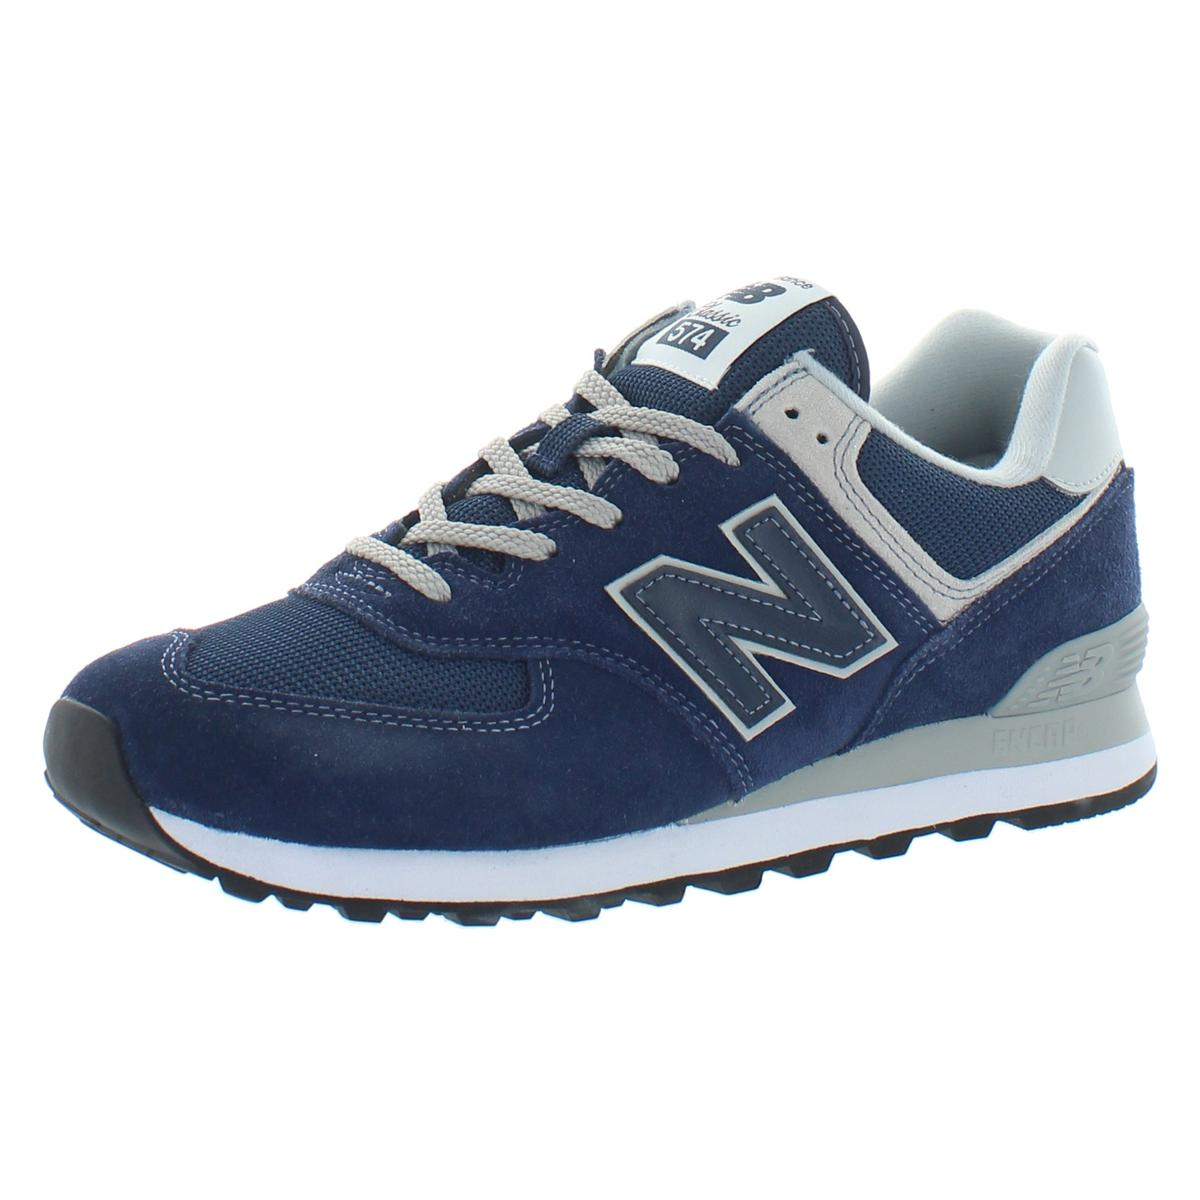 New Balance - New Balance Mens 574 Suede Fitness Walking Shoes ...